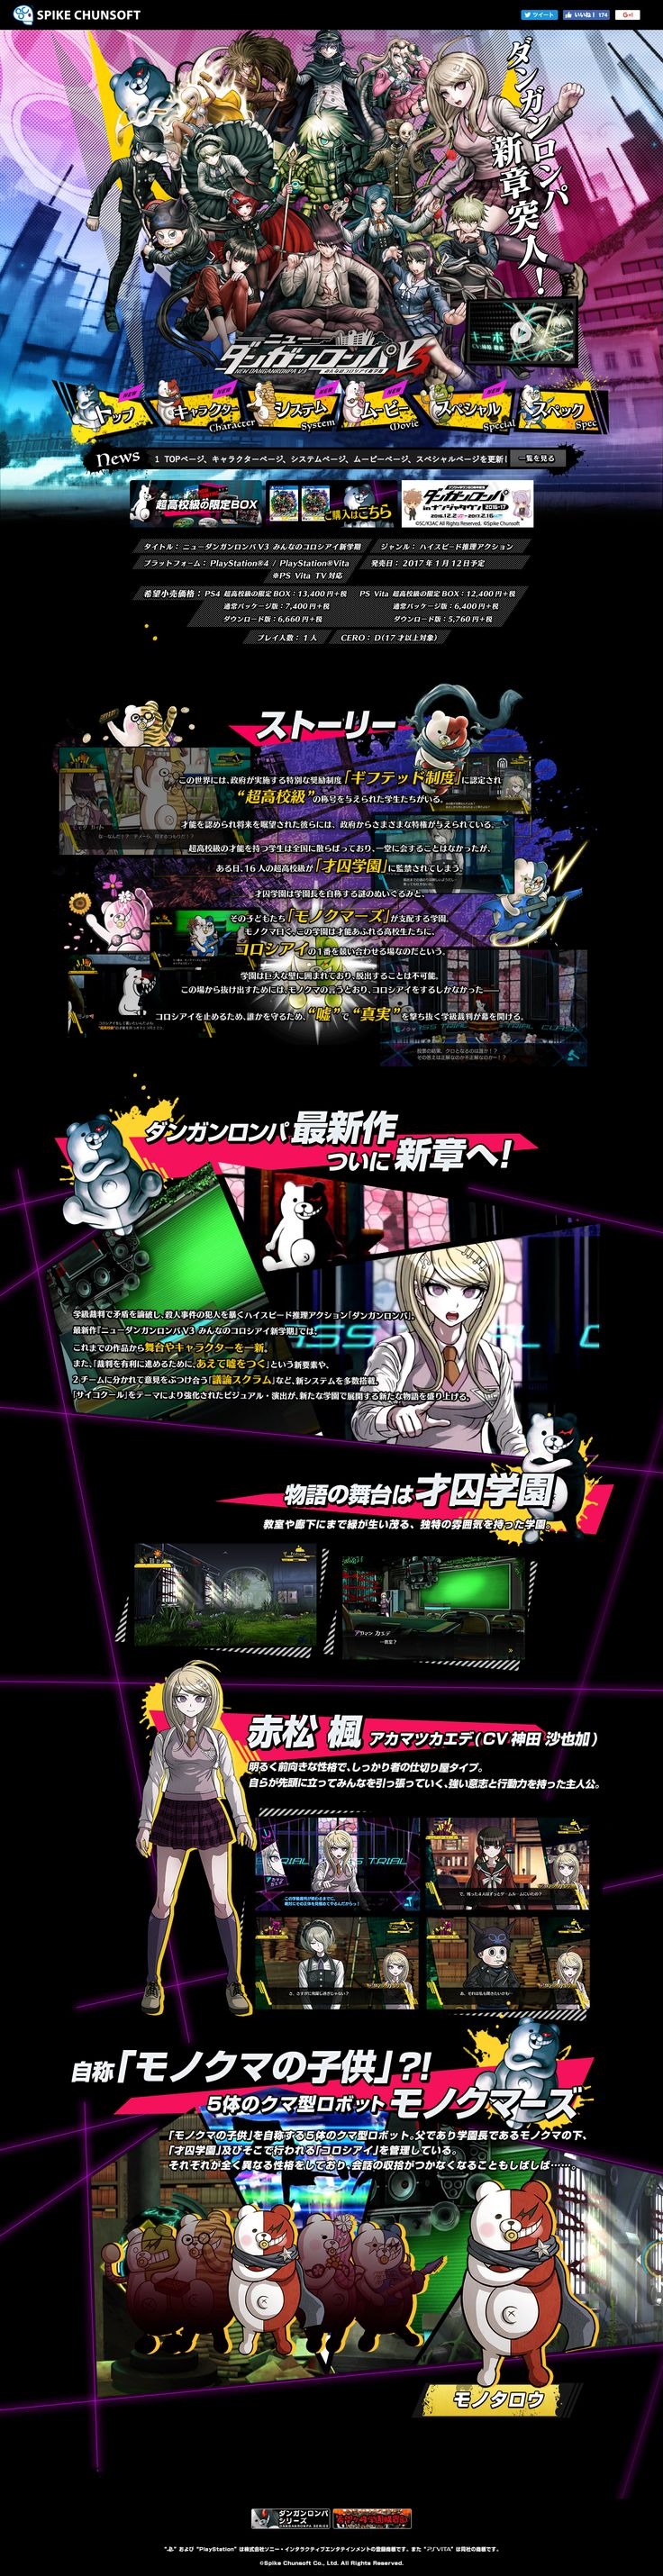 New Danganronpa v3 (Japanese) #WebDesign